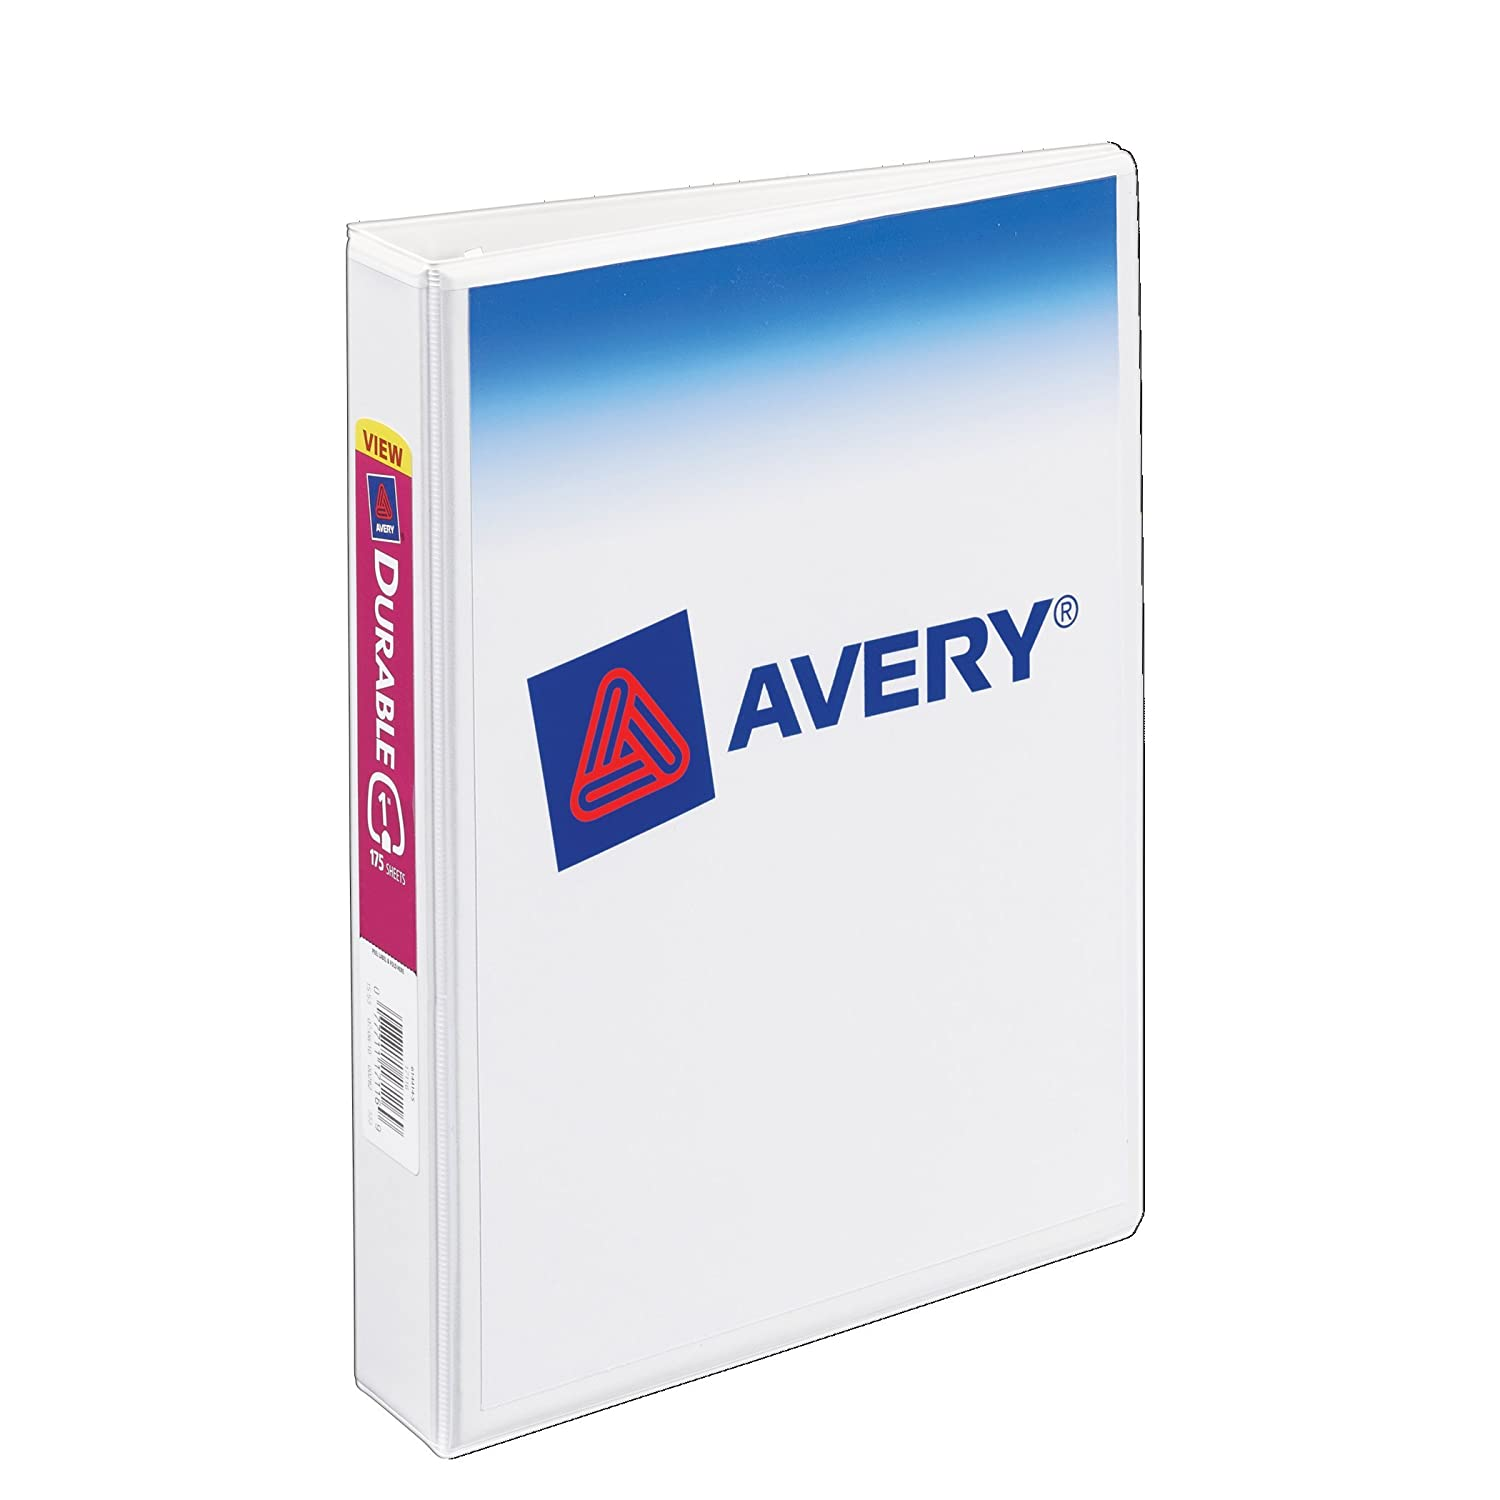 Avery Mini Durable View Binder For 5.5 X 8.5 Inches Pages